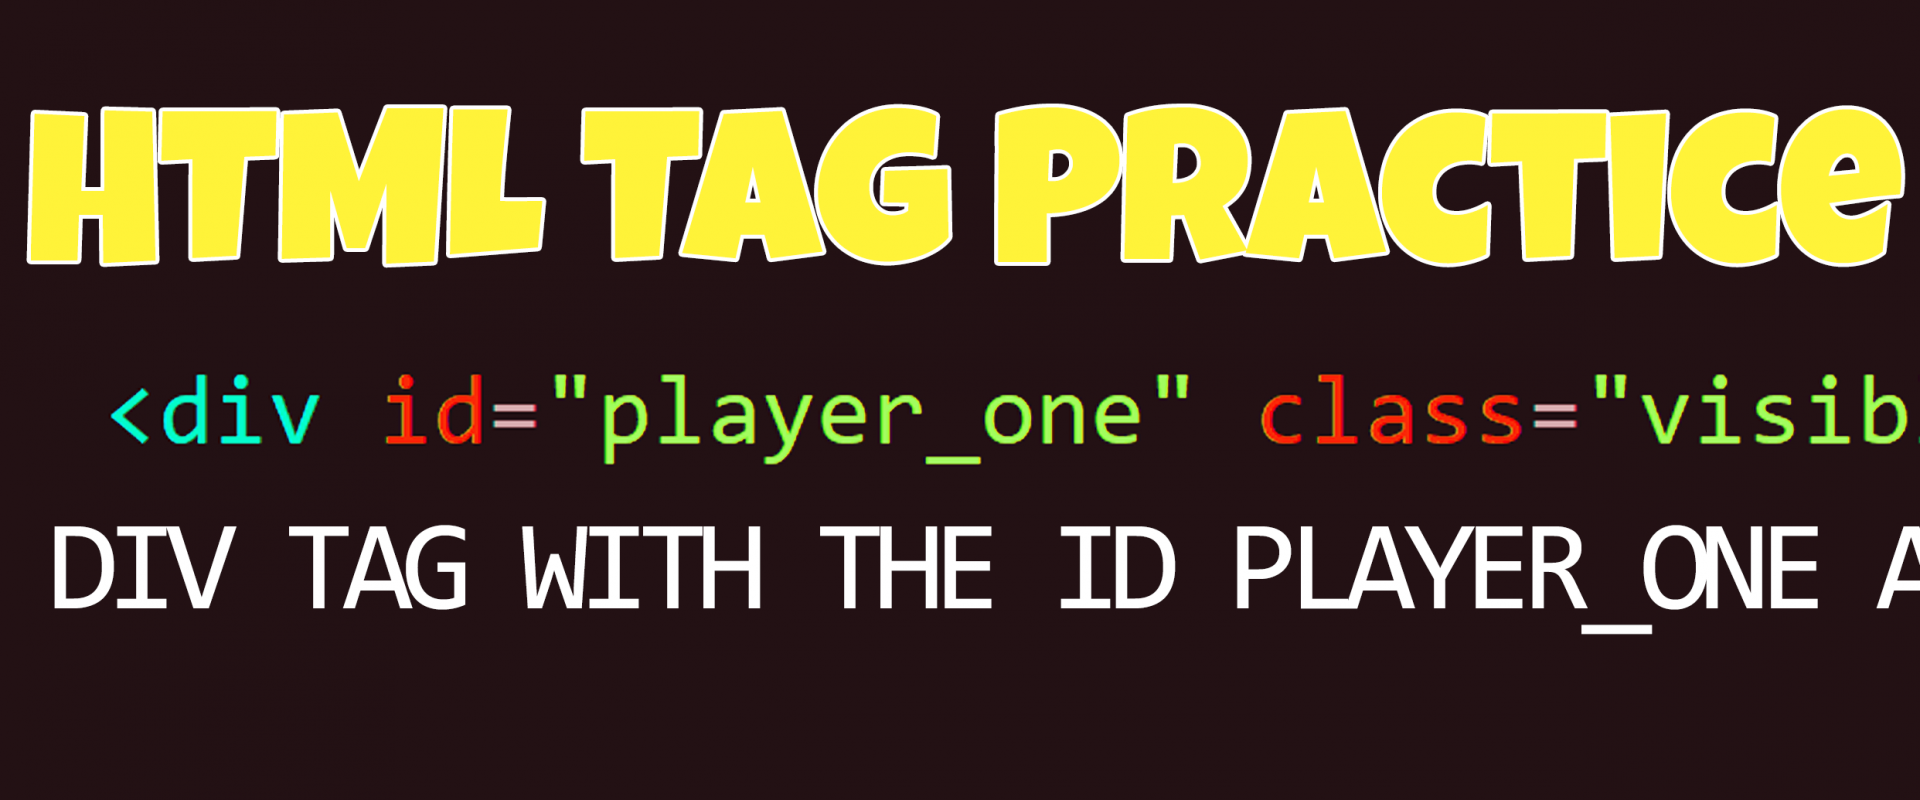 HTML Tag Practice